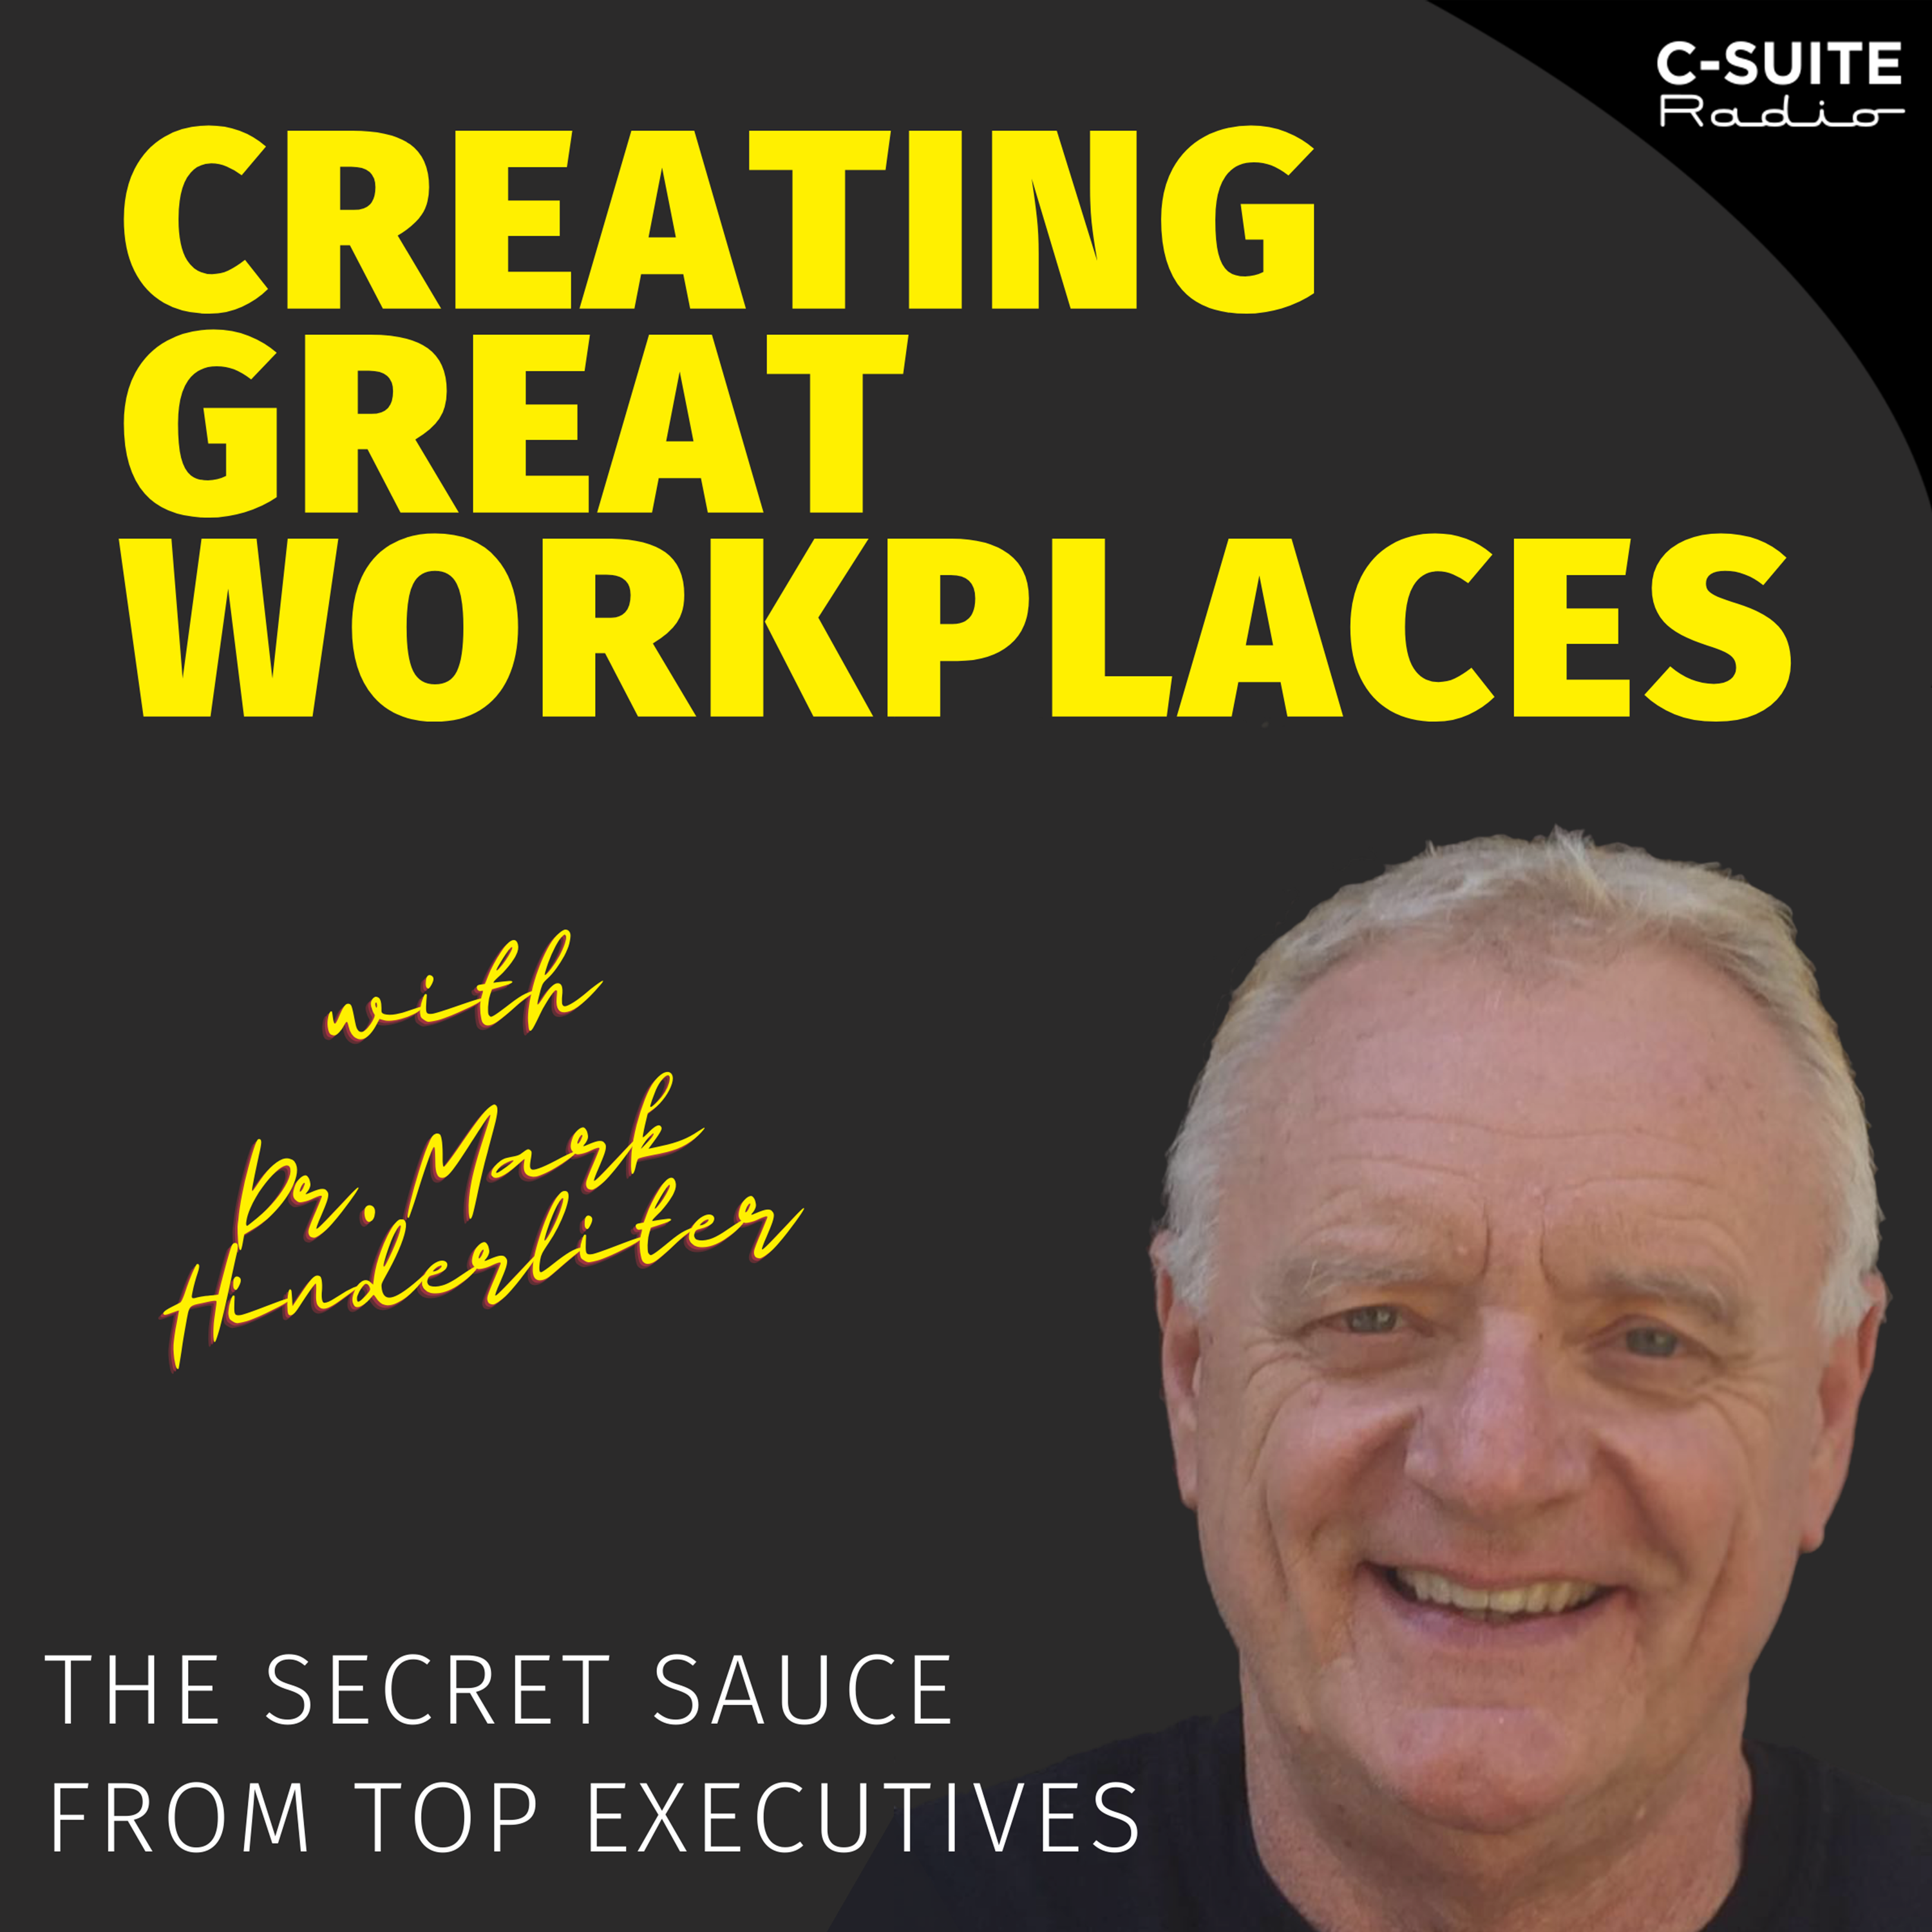 Creating Great Workplaces